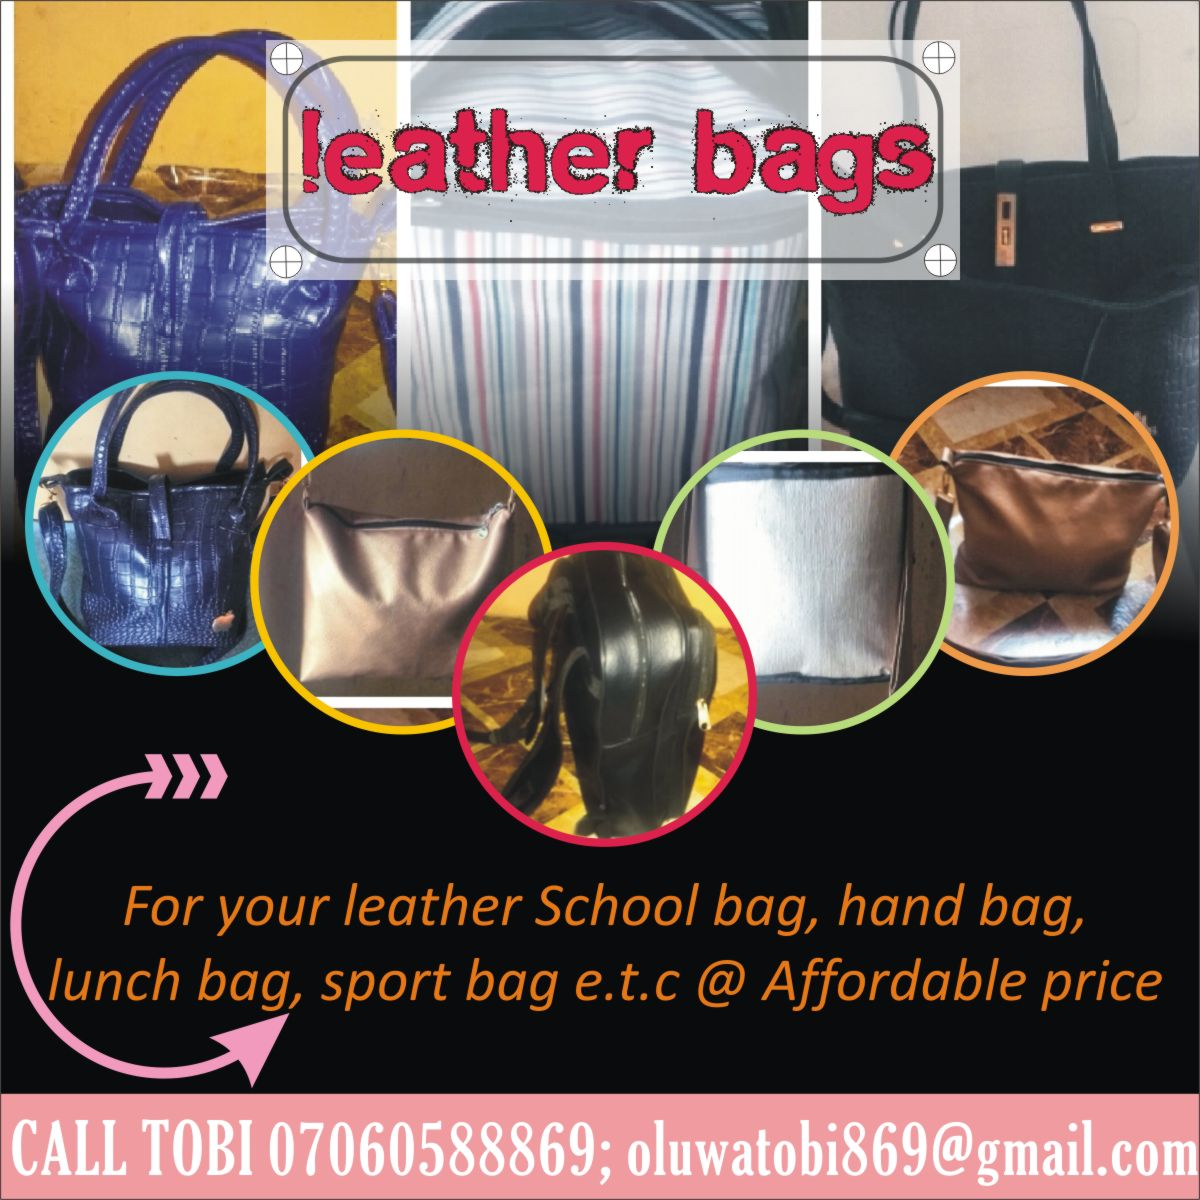 Get Your Hand Made Bag At An Affordable Price.... Check it out